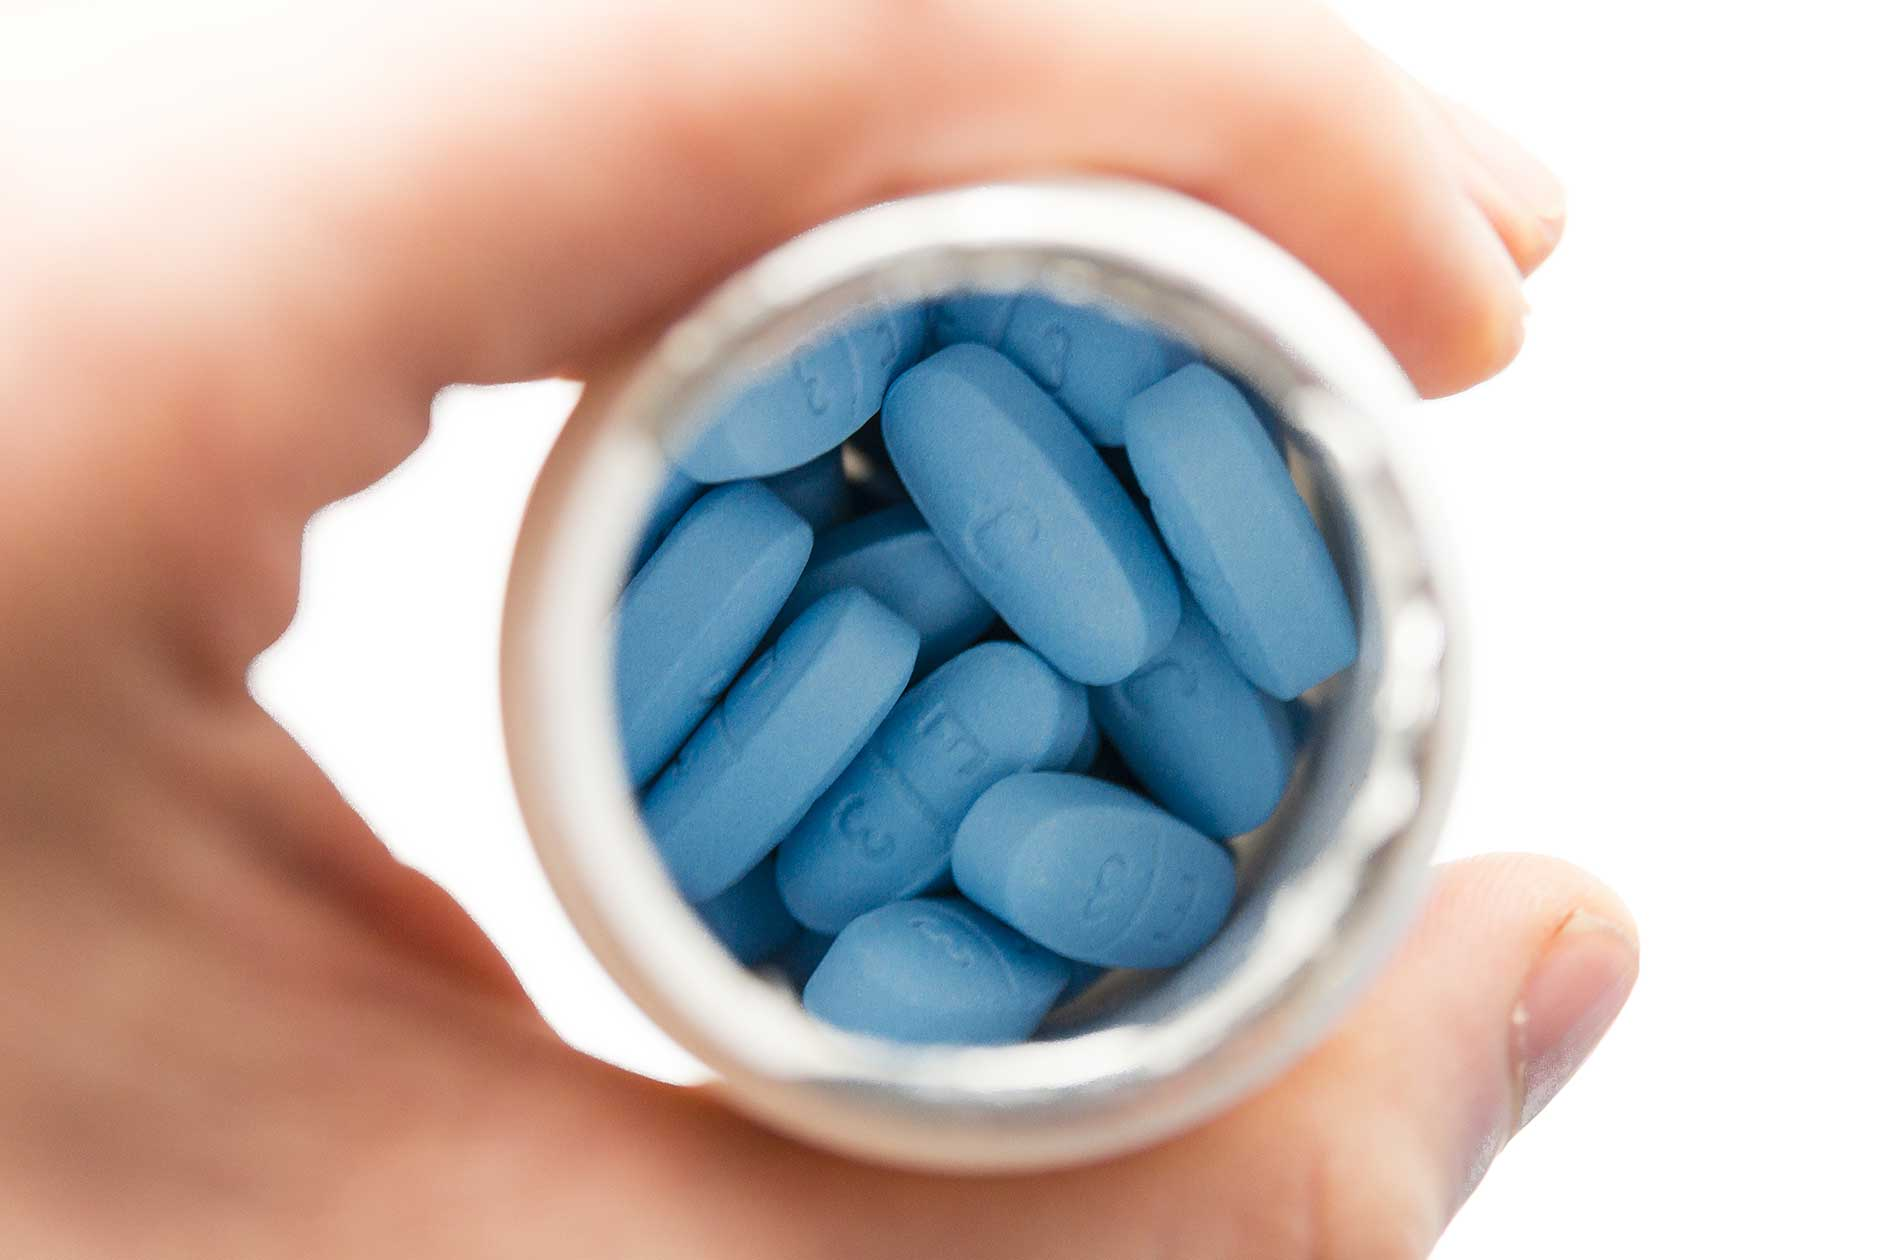 Viagra pills in a bottle